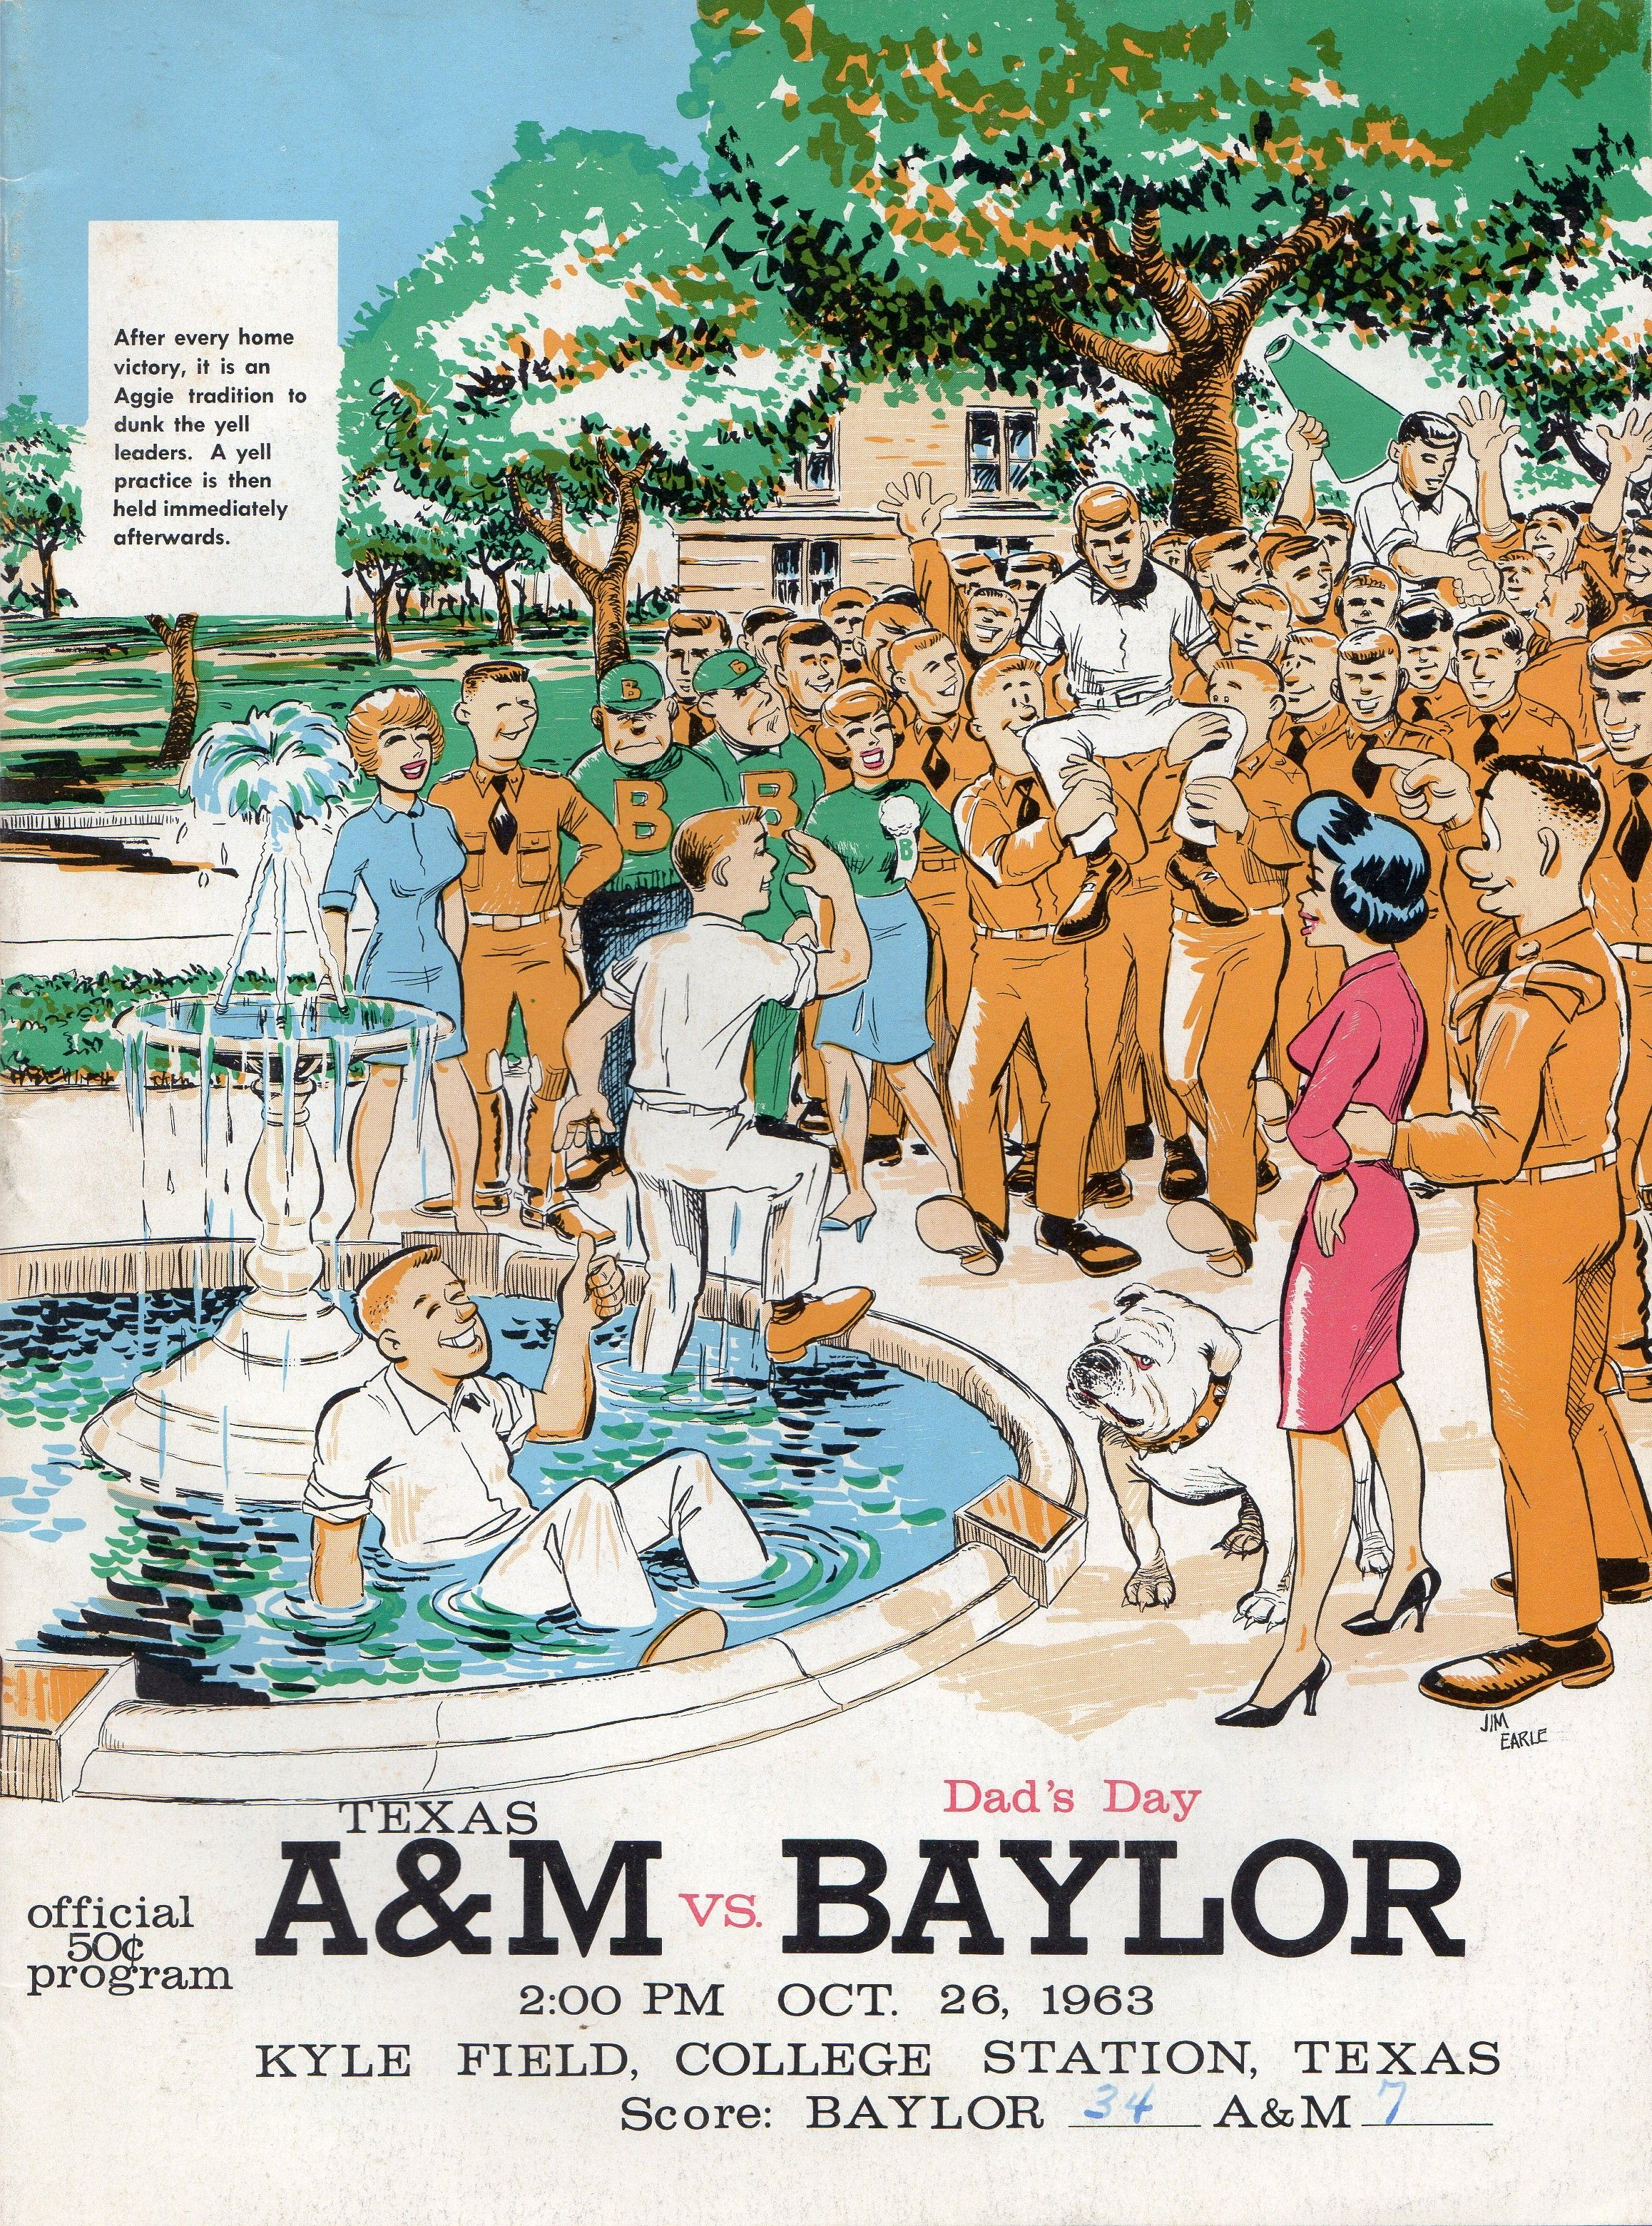 1963 Game Program between Texas A&M vs. Baylor at Kyle